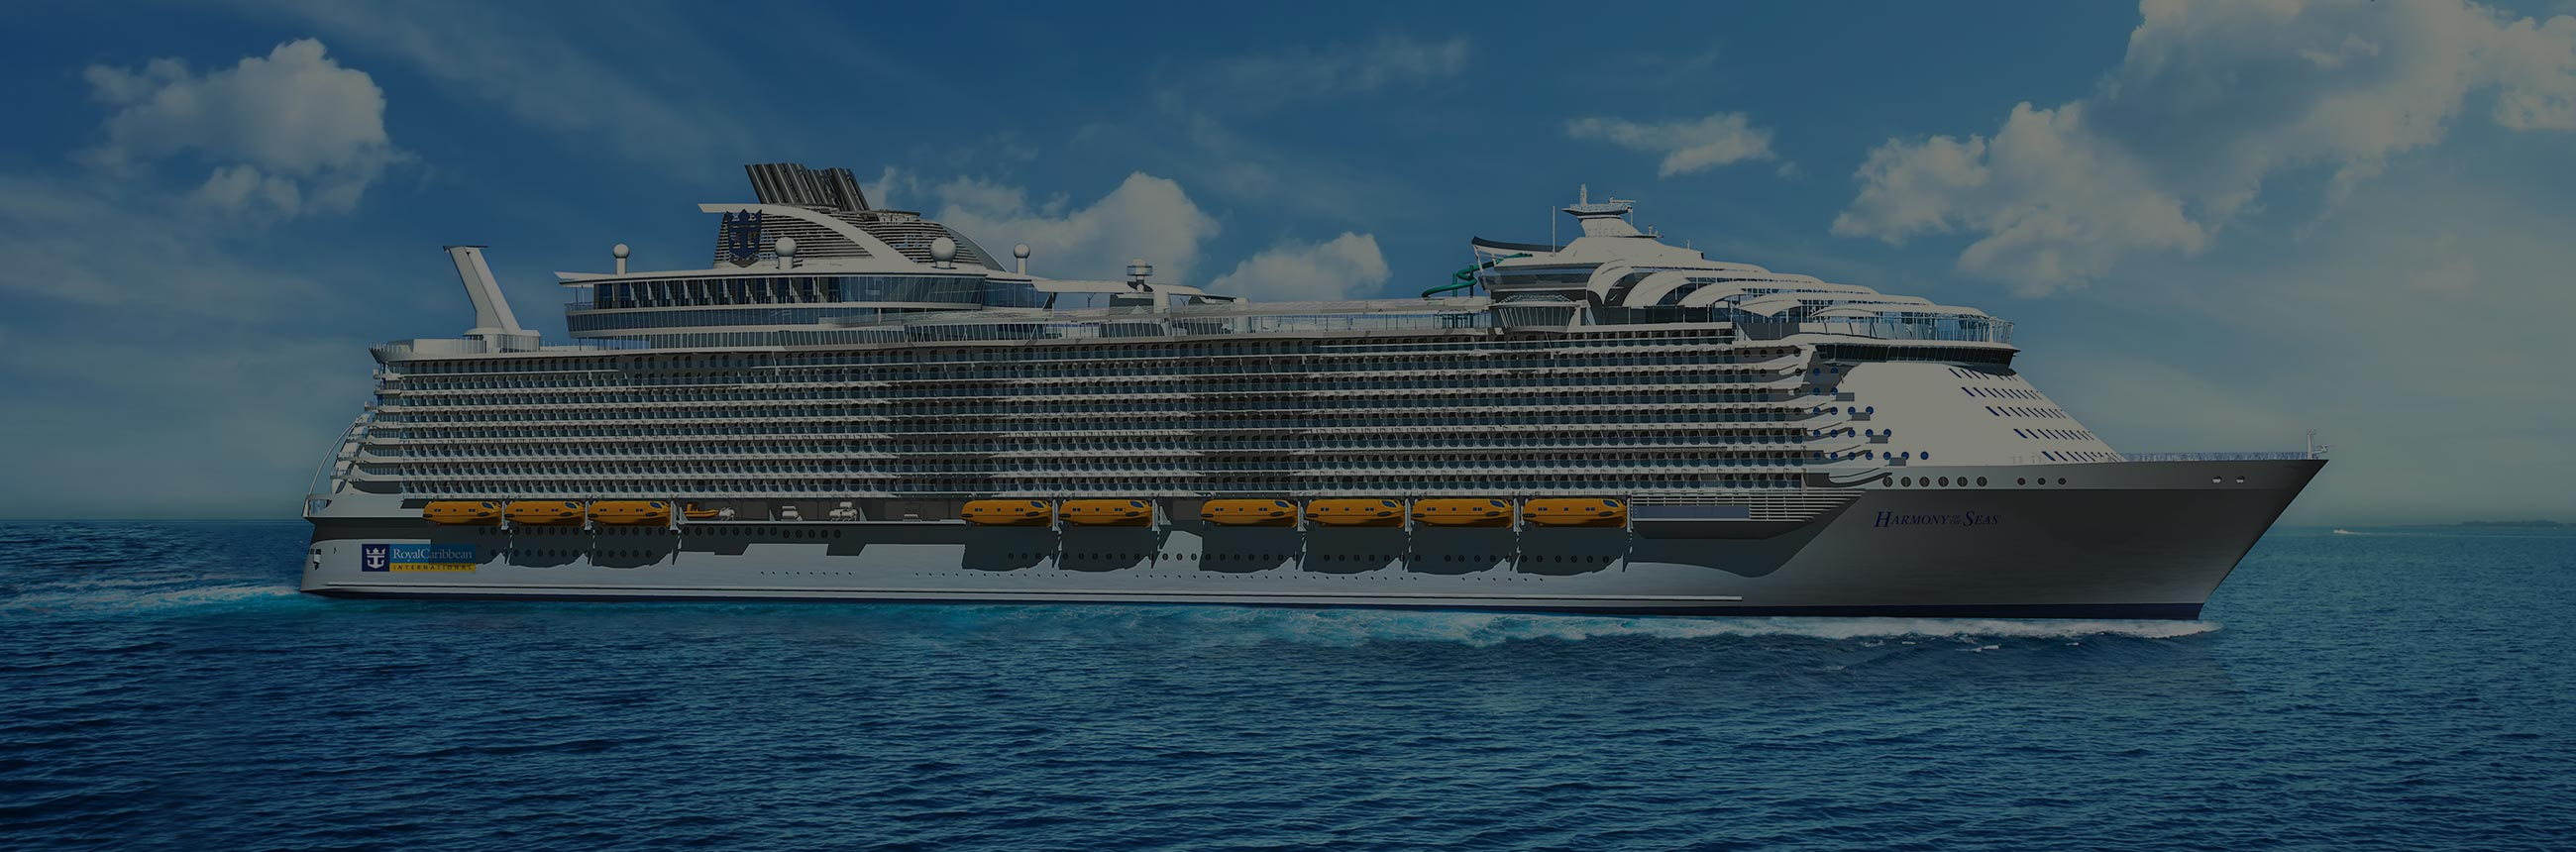 Royal Caribbean International Engagement Hub